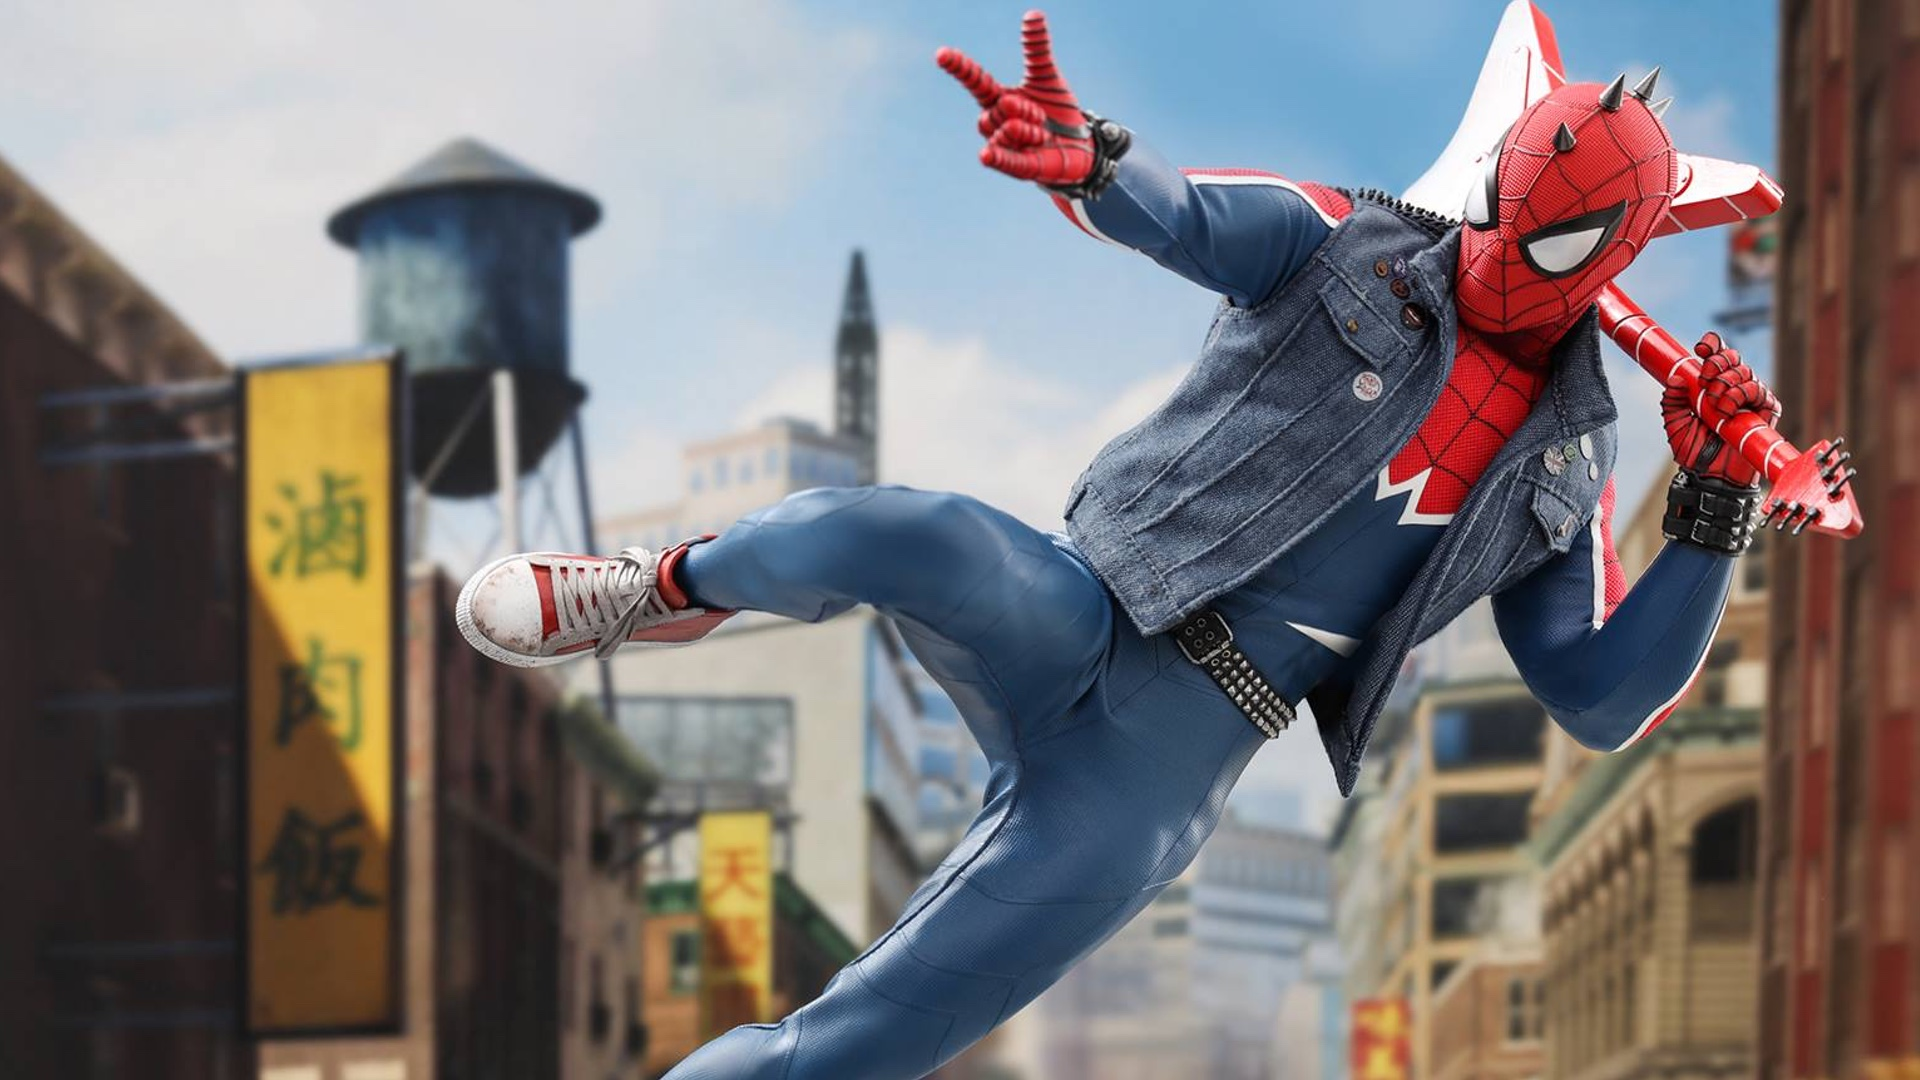 Hot Toys Tackle Video Game Spider-Man